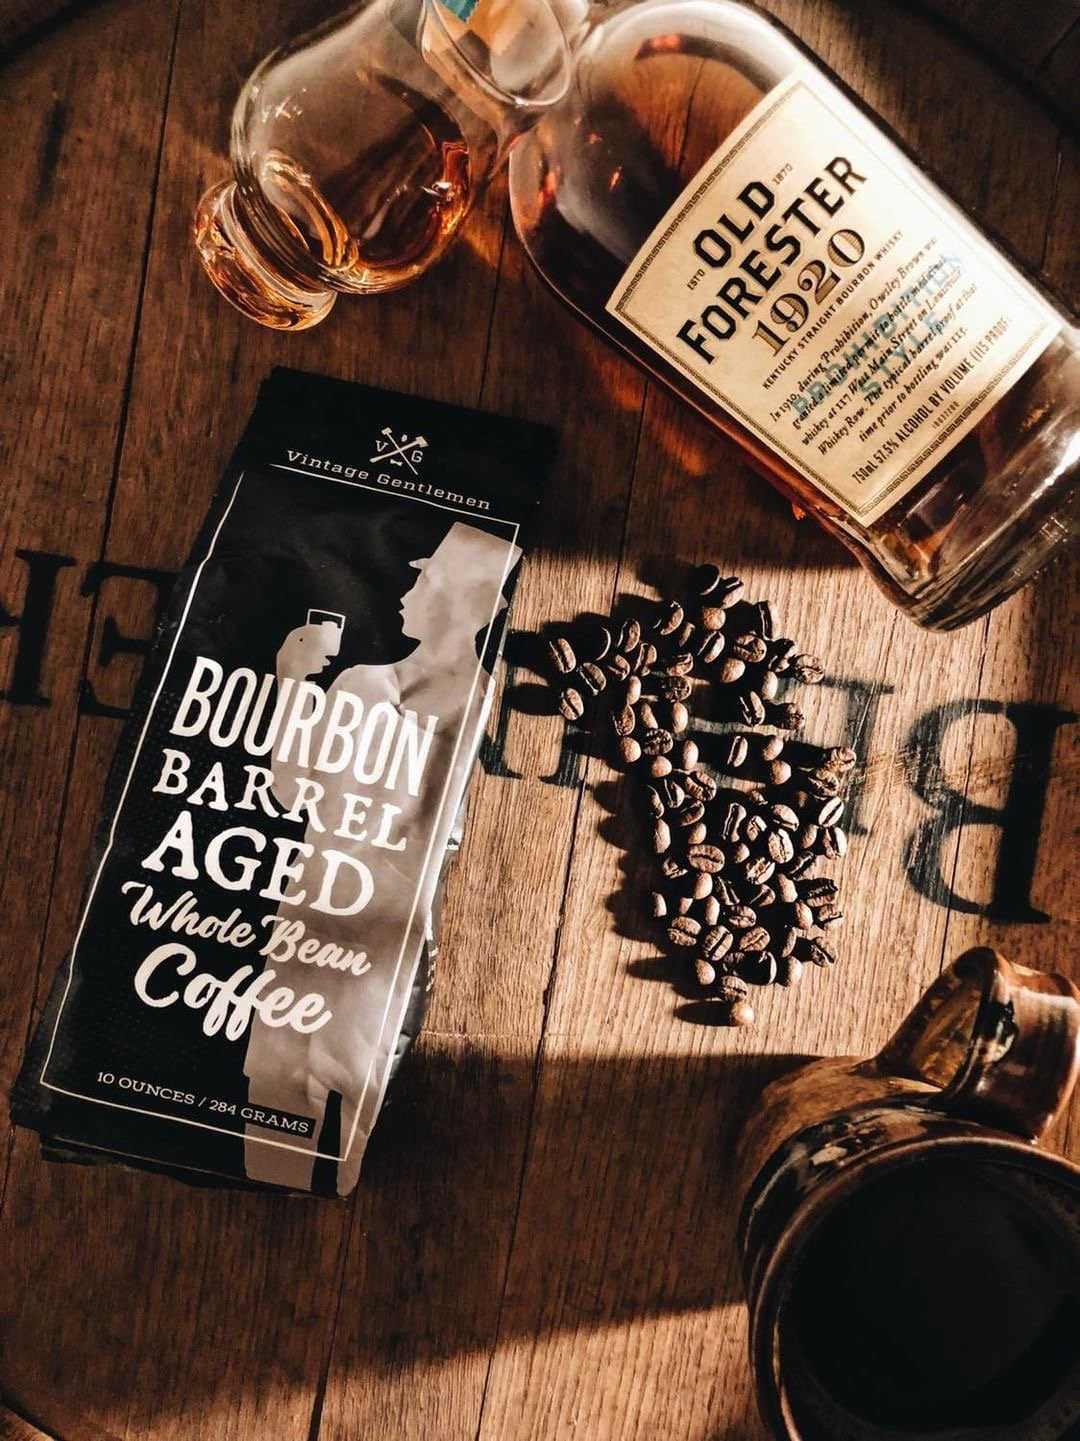 Bourbon Barrel Aged Coffee- A Coffee For The Whiskey Lover